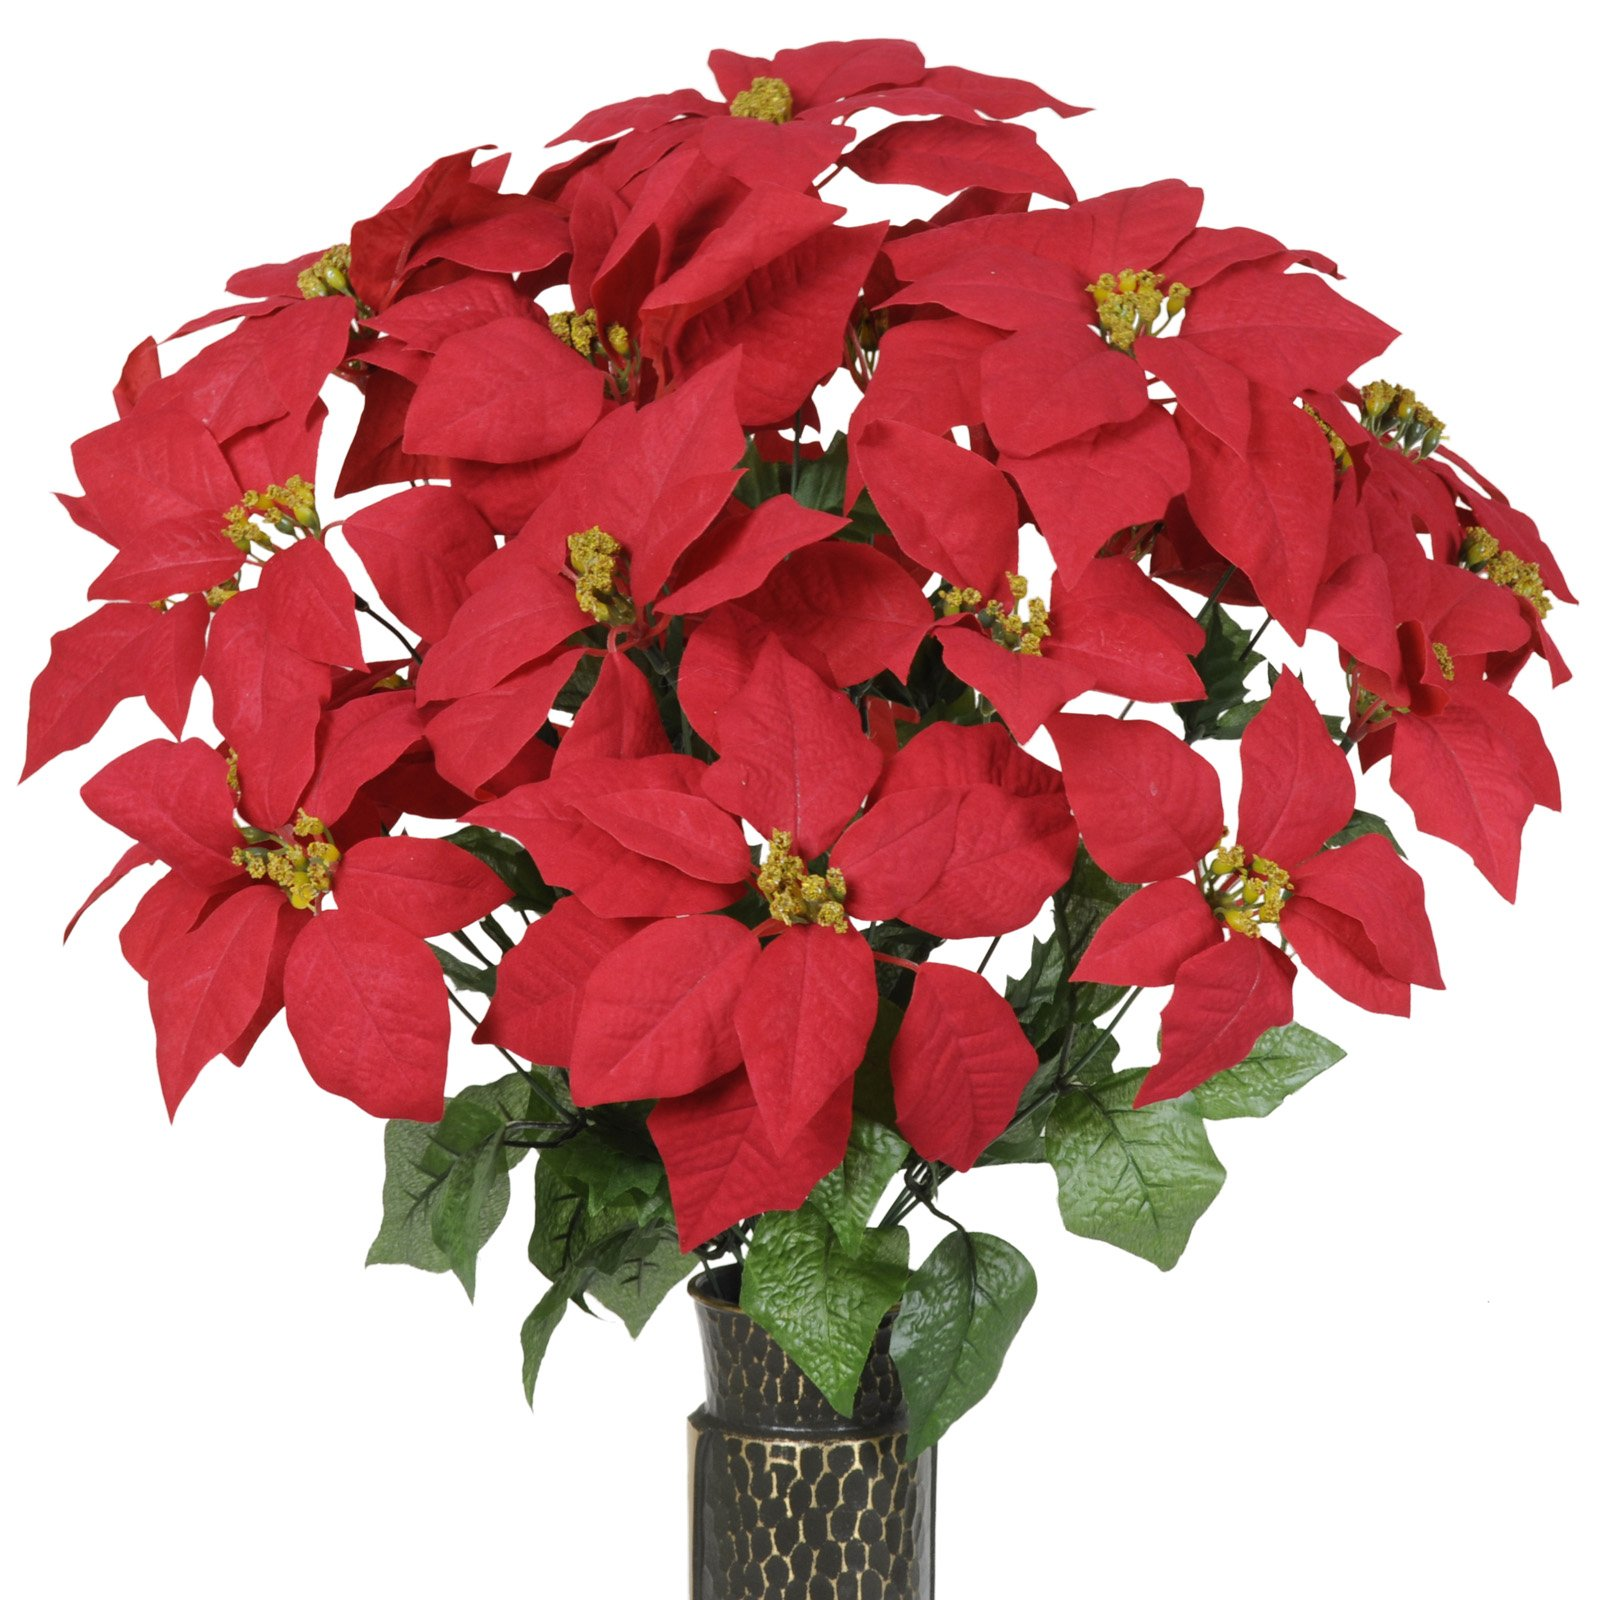 Red-Poinsettia-Artificial-Bouquet-featuring-the-Stay-In-The-Vase-Designc-Flower-Holder-LG1019